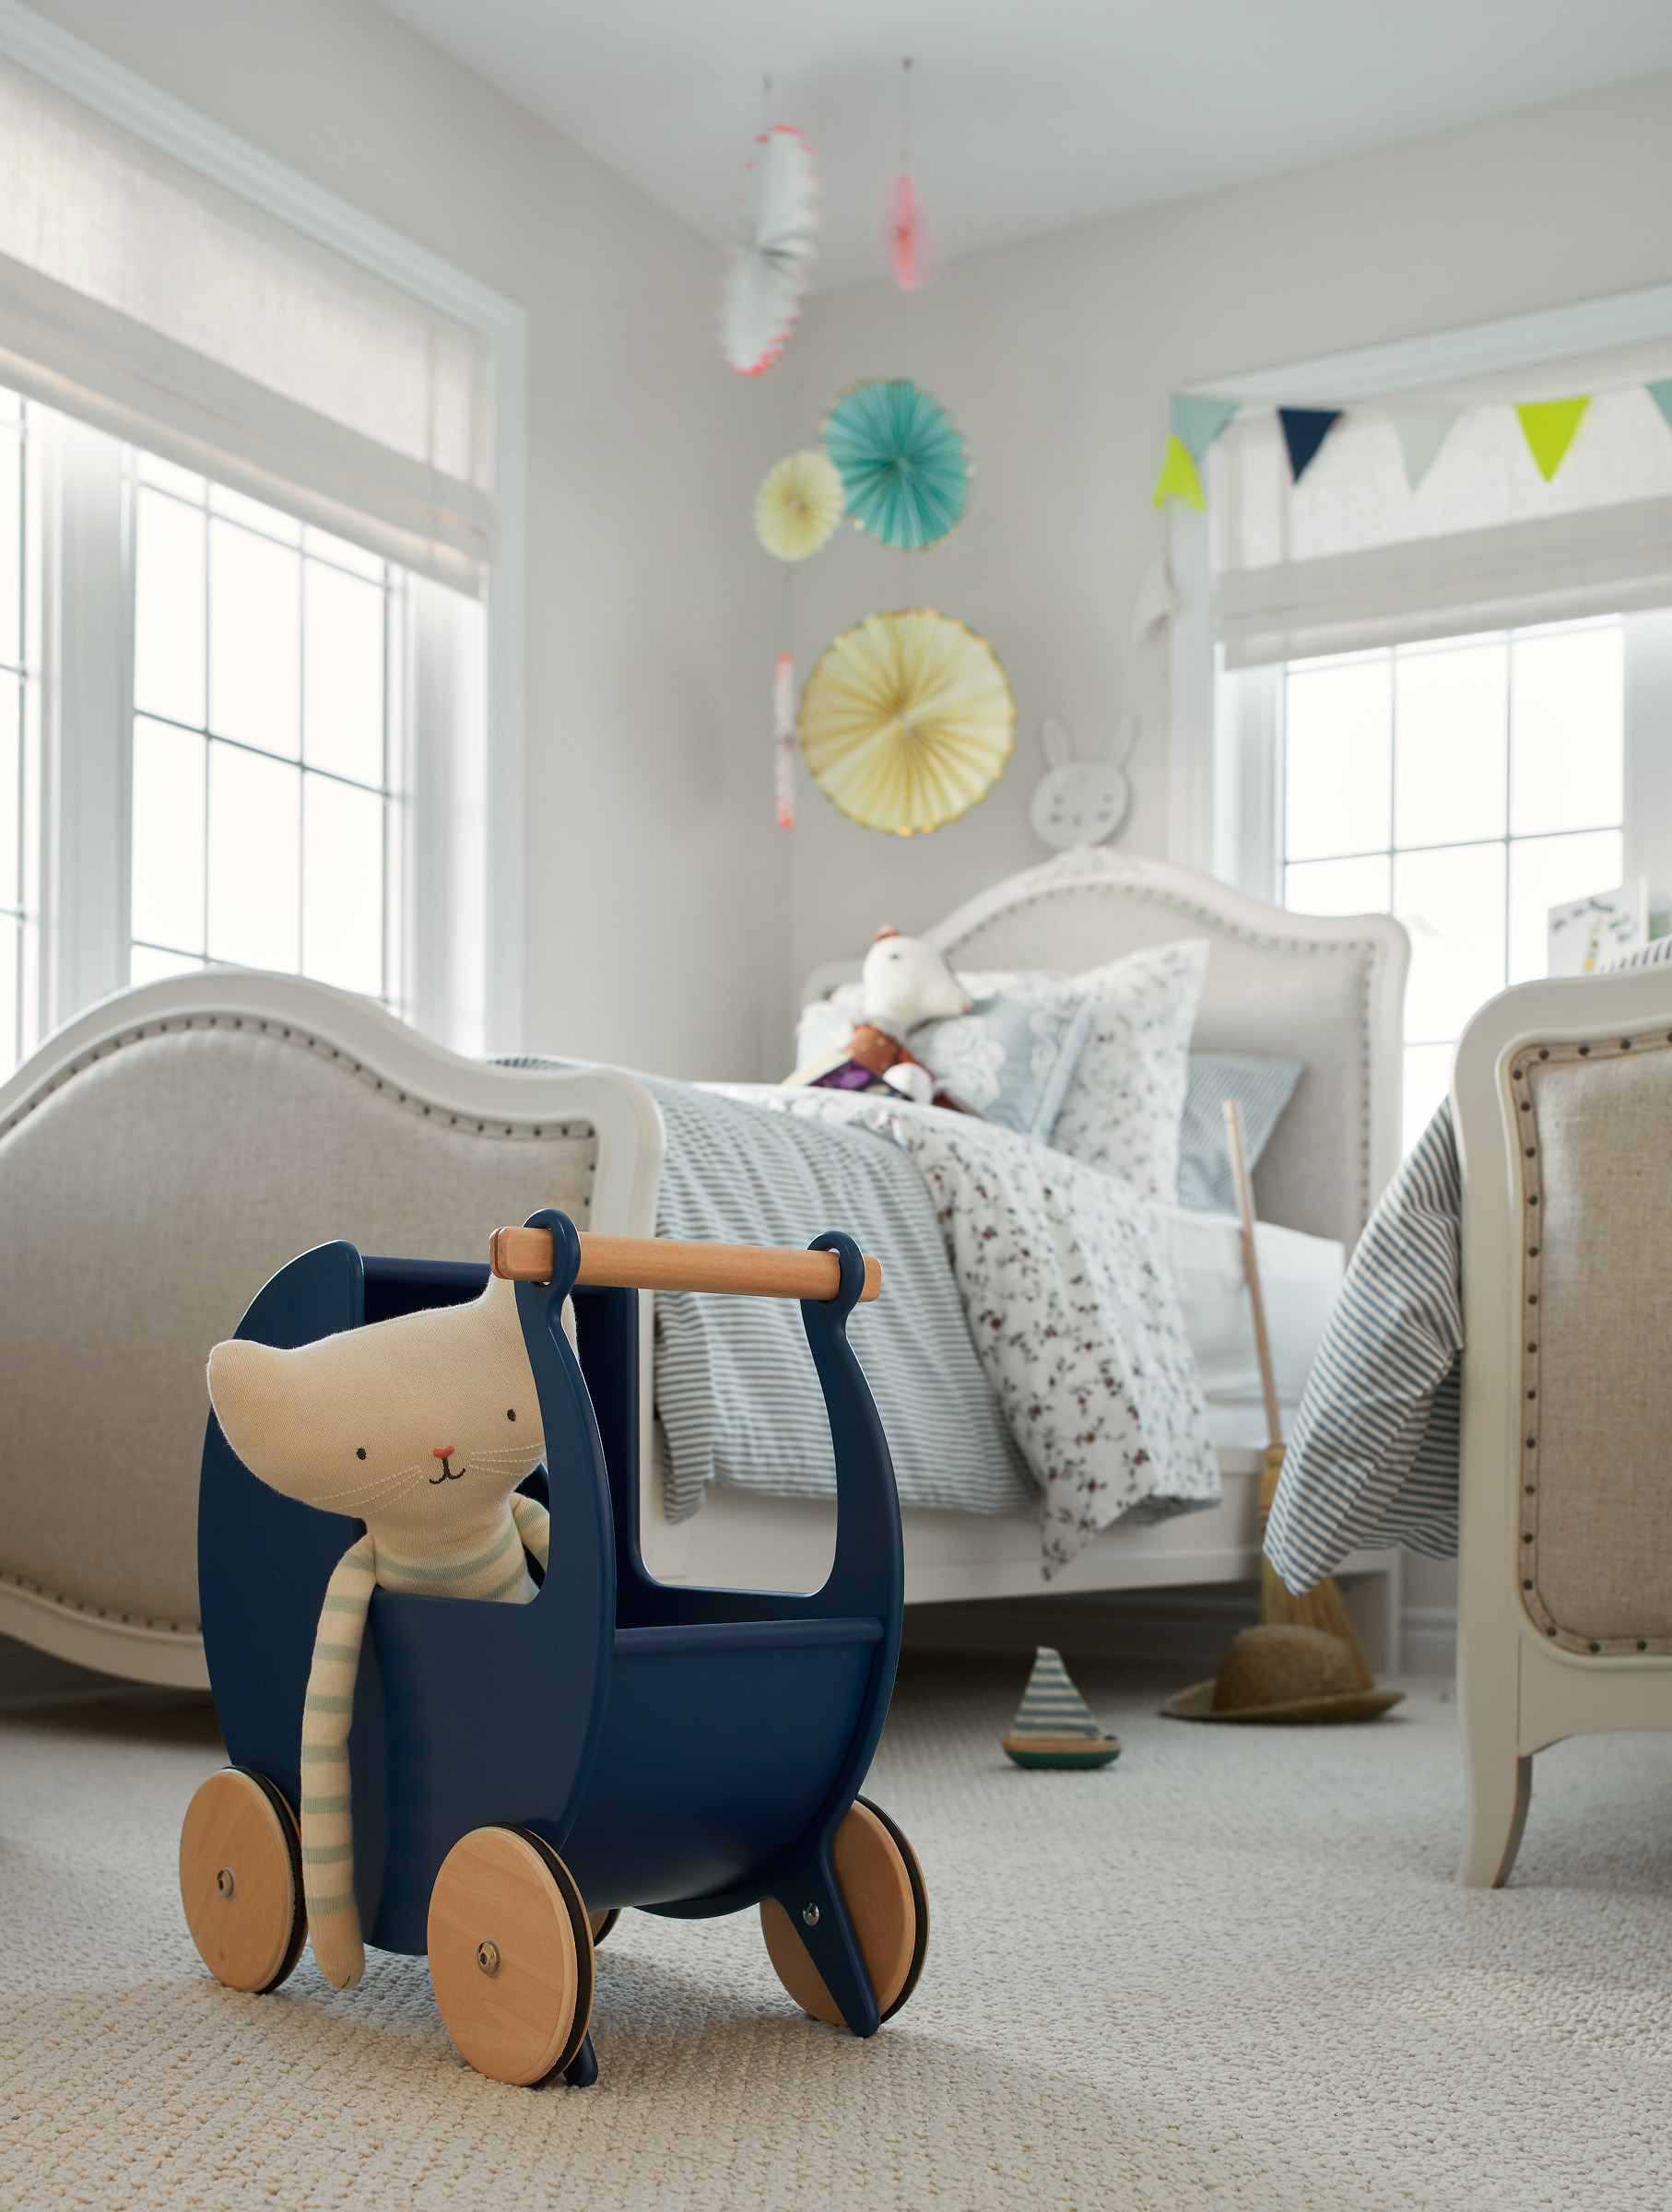 Shabby Chic children's bedroom with close up of blue toy on floor